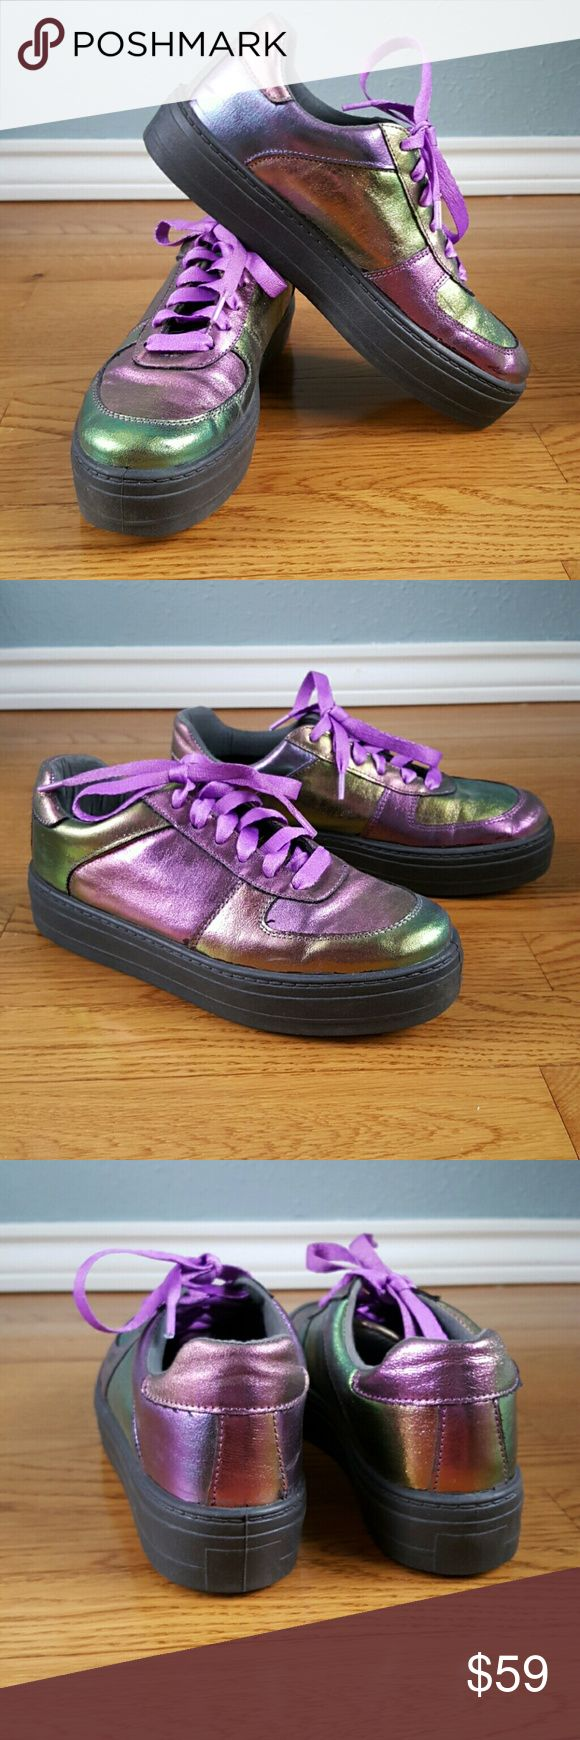 ASOS Shimmery Purple/Green Platform Sneakers Awesome ASOS brand iridescent beetle colored tennis shoes. Black rubber platform soles and purple laces. Excellent pre-owned condition. Only worn a couple of times. Vegan, non-leather. UK 6, Euro 39. I think they are a US women's size 8. KEYWORDS: UNIF, YRU, Nasty Gal, Dolls Kill, Jeffrey Campbell, Rave. ASOS Shoes Sneakers